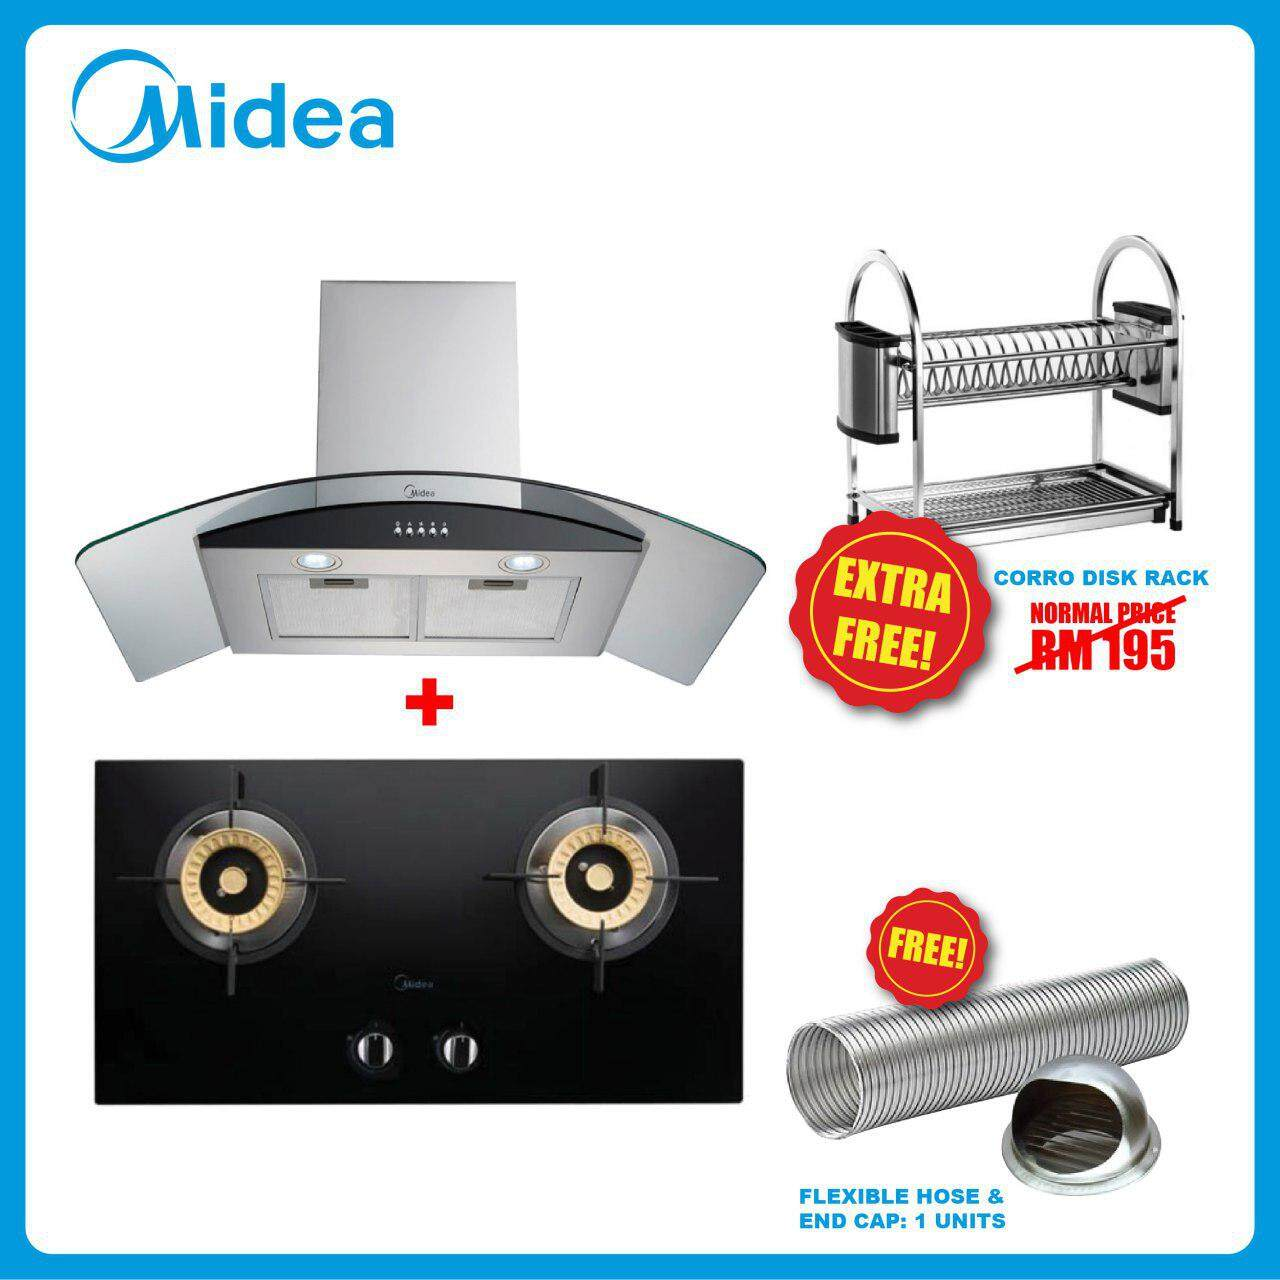 MIDEA MCH-90MV3 Cooker Hood with Charcoal Filter + MGH-2408GL 2 Burners Build-In Glass Hob